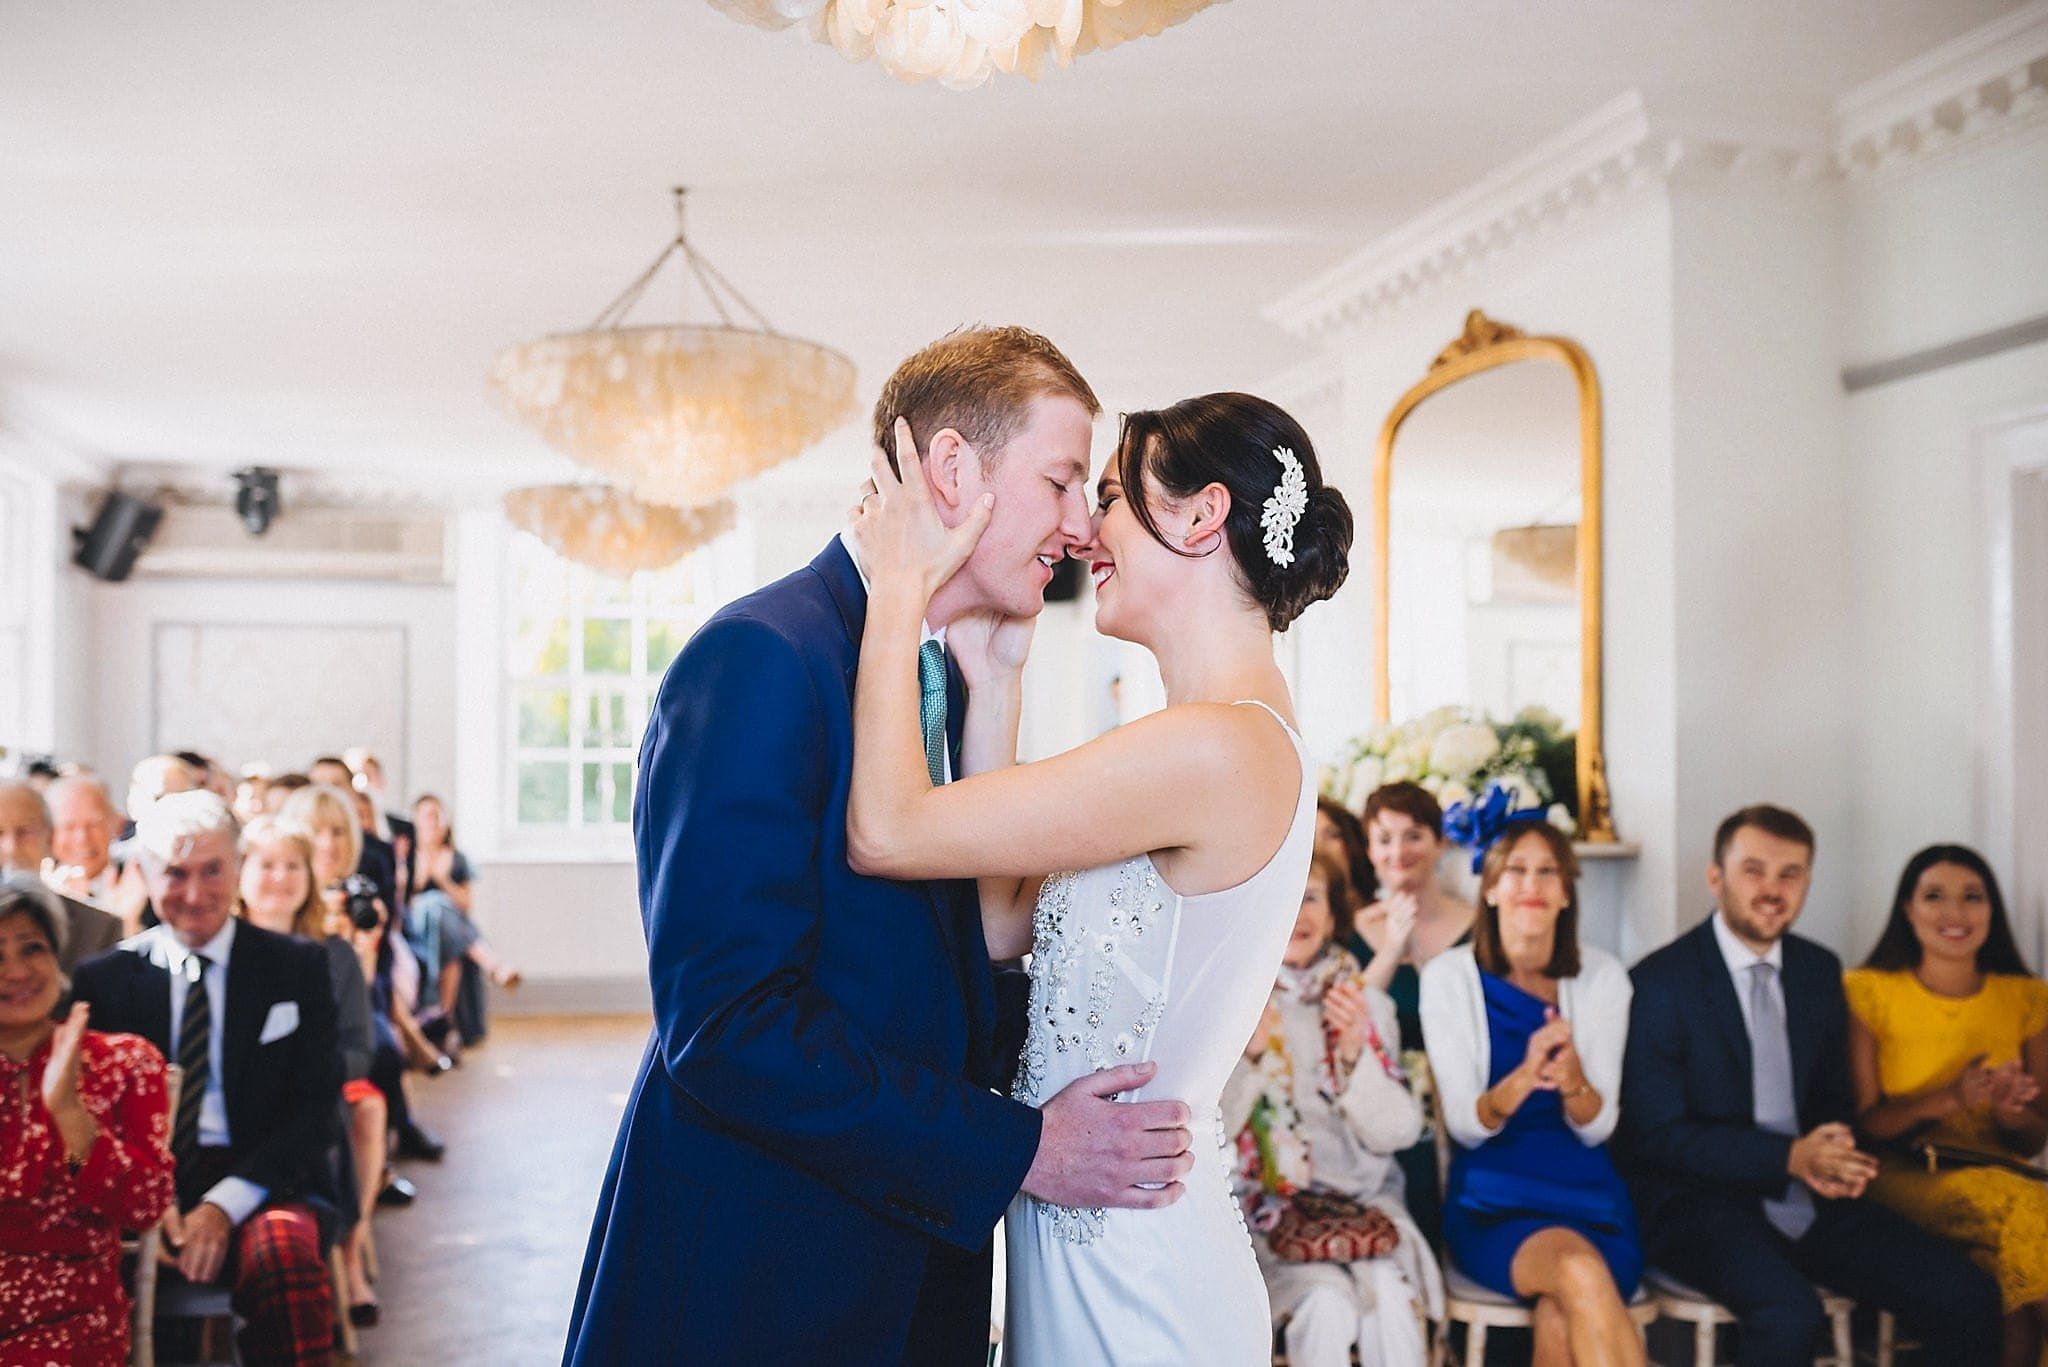 Bride and Groom's first wedding kiss at their Elegant Late Summer Belair House Wedding